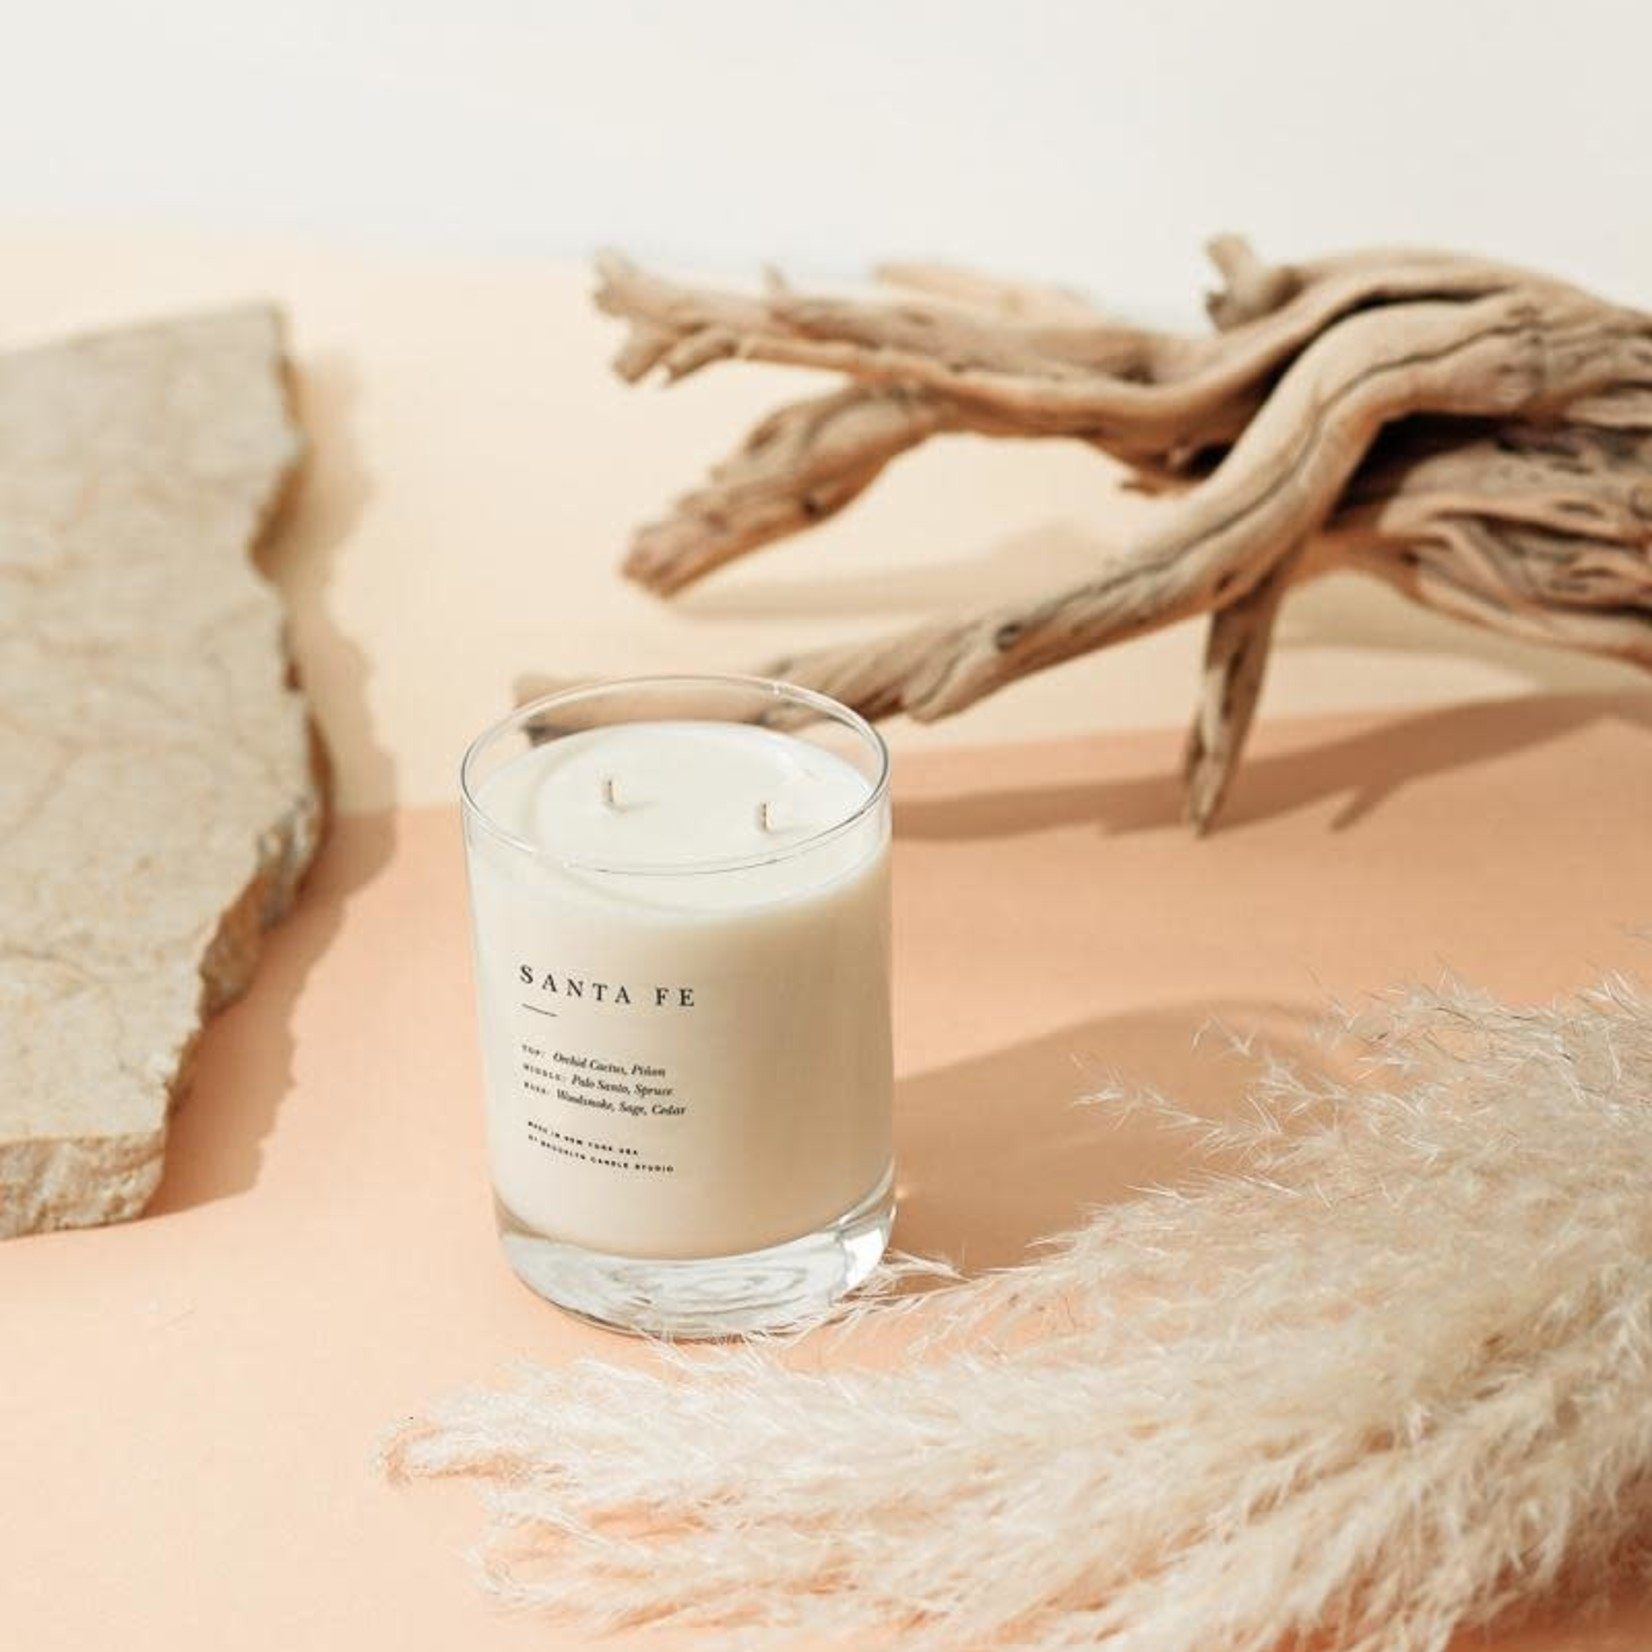 Brooklyn Candle Studio Brooklyn Candle Studio SANTA FE Escapist Candle